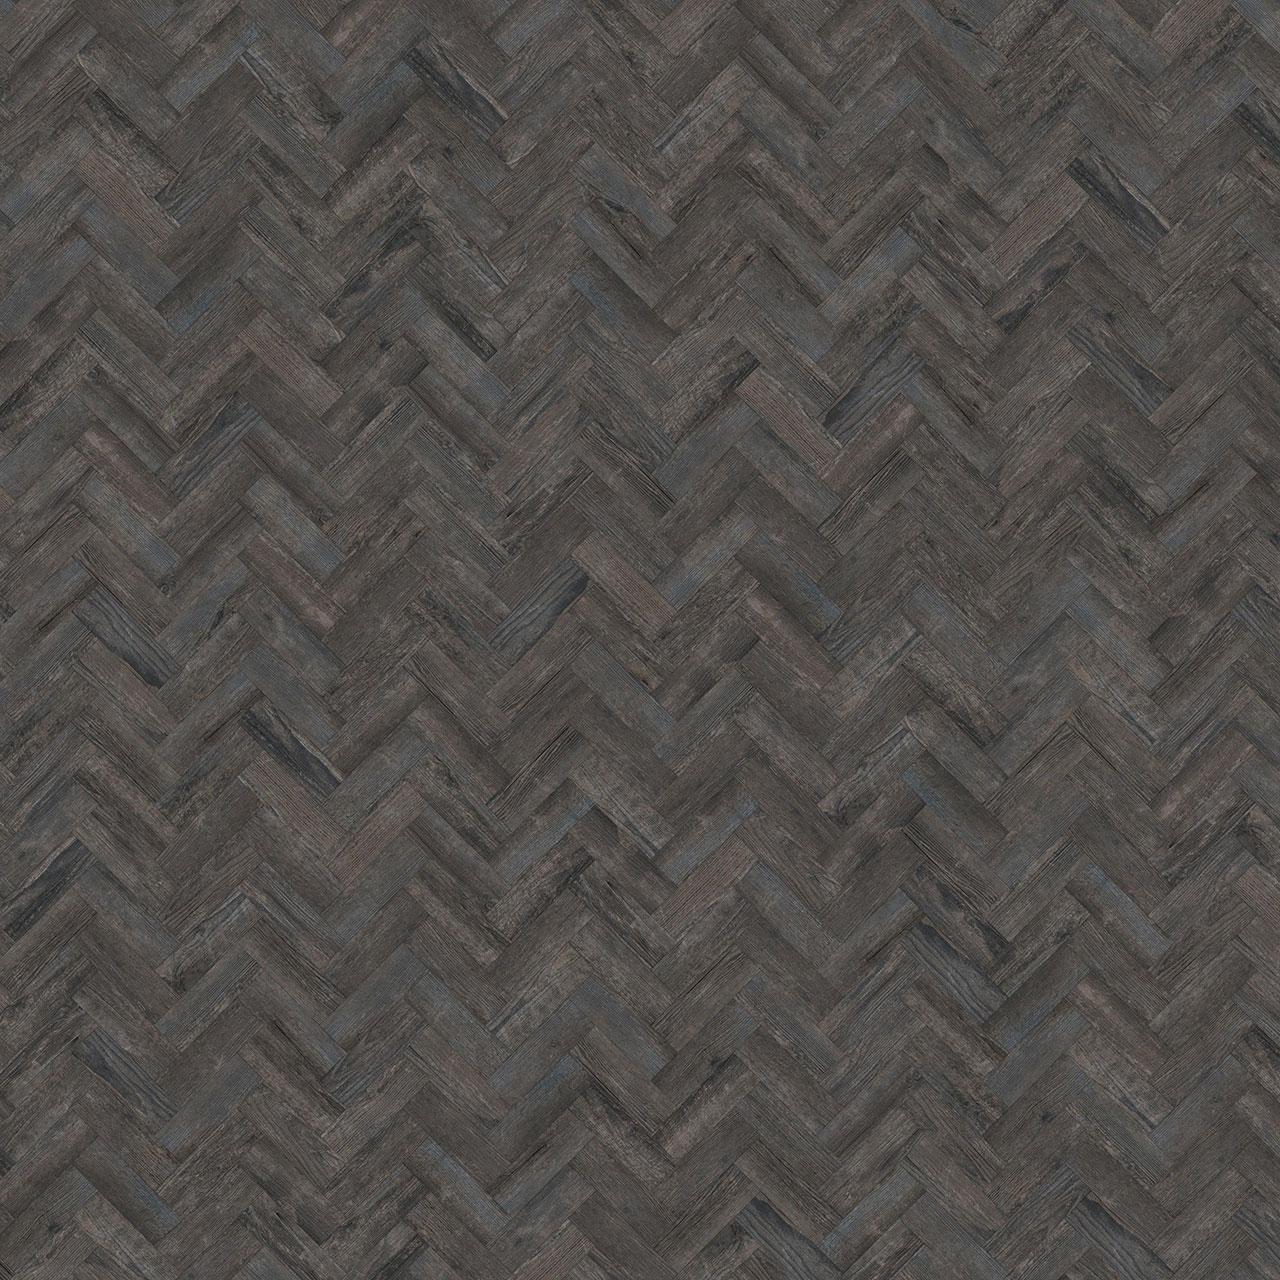 Amtico Spacia Blackened Spa Wood Parquet 3x9 SS5W3025